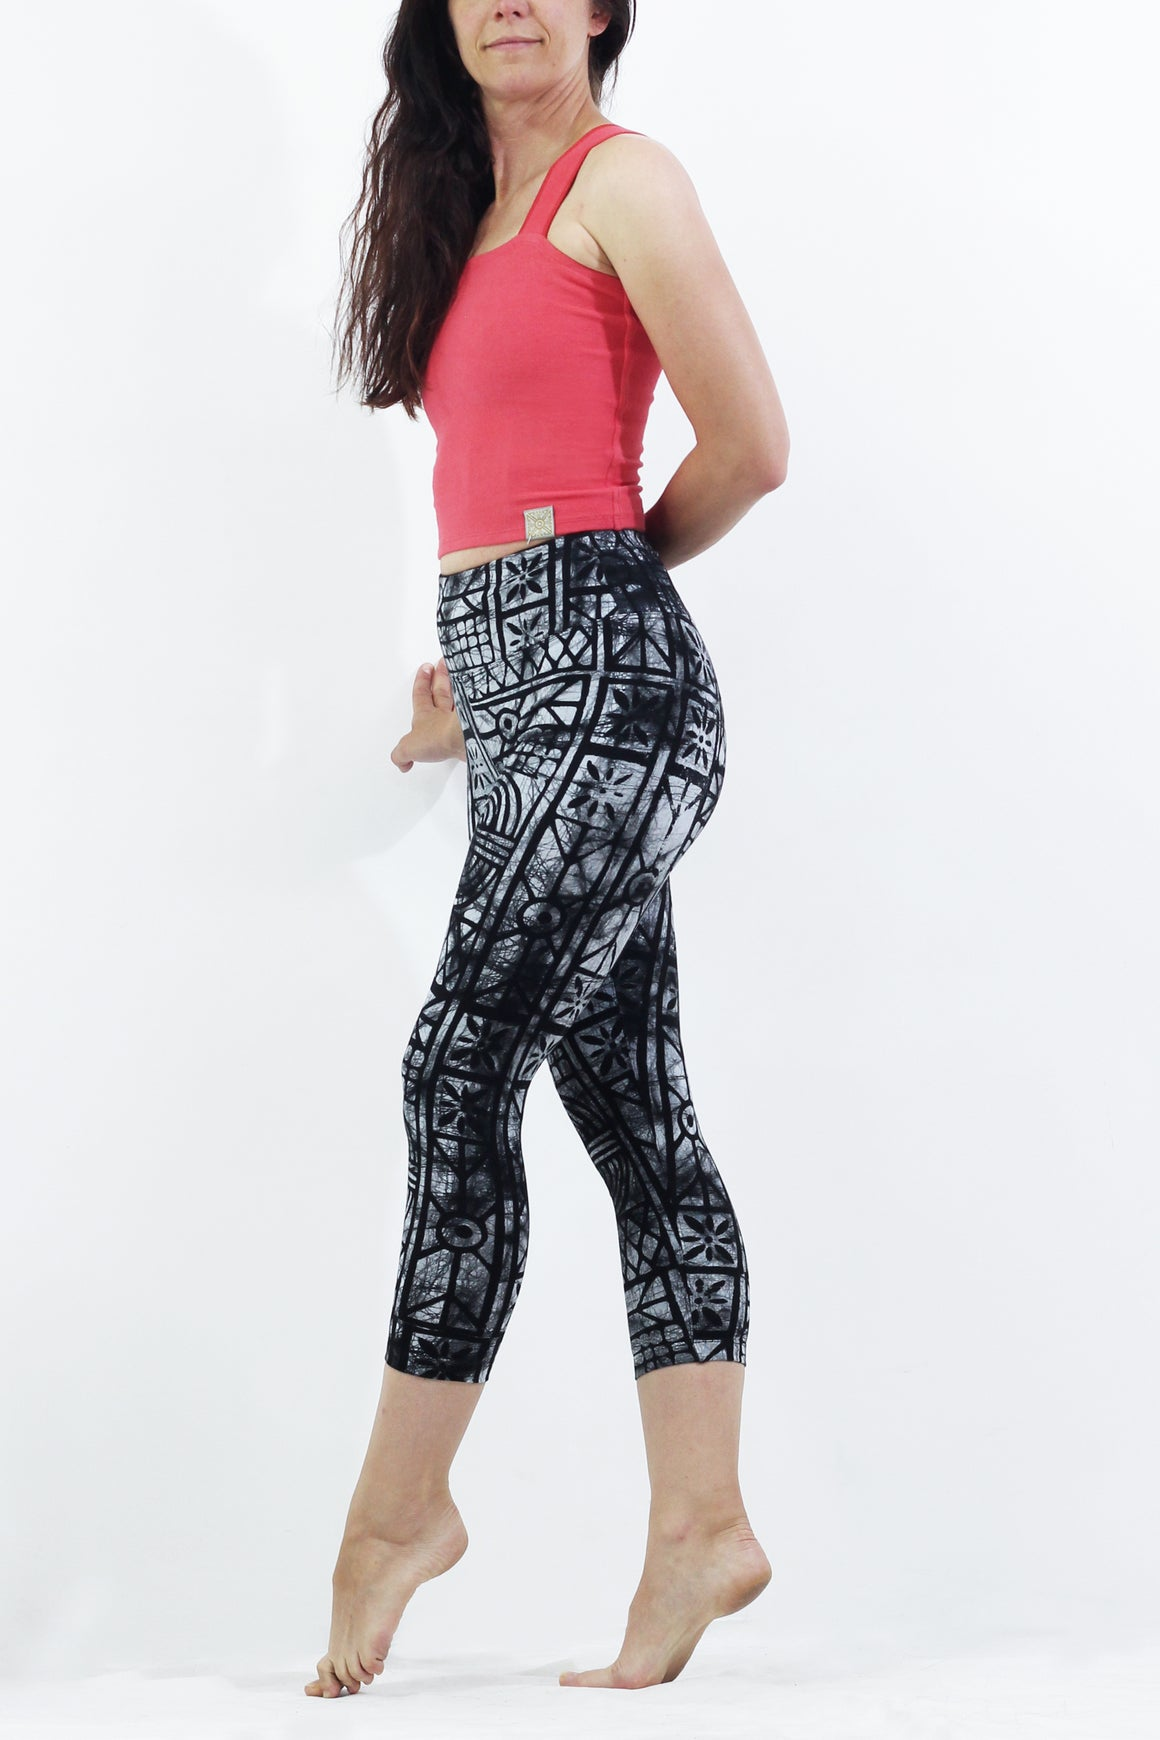 EXnO's - Leggings or Crops